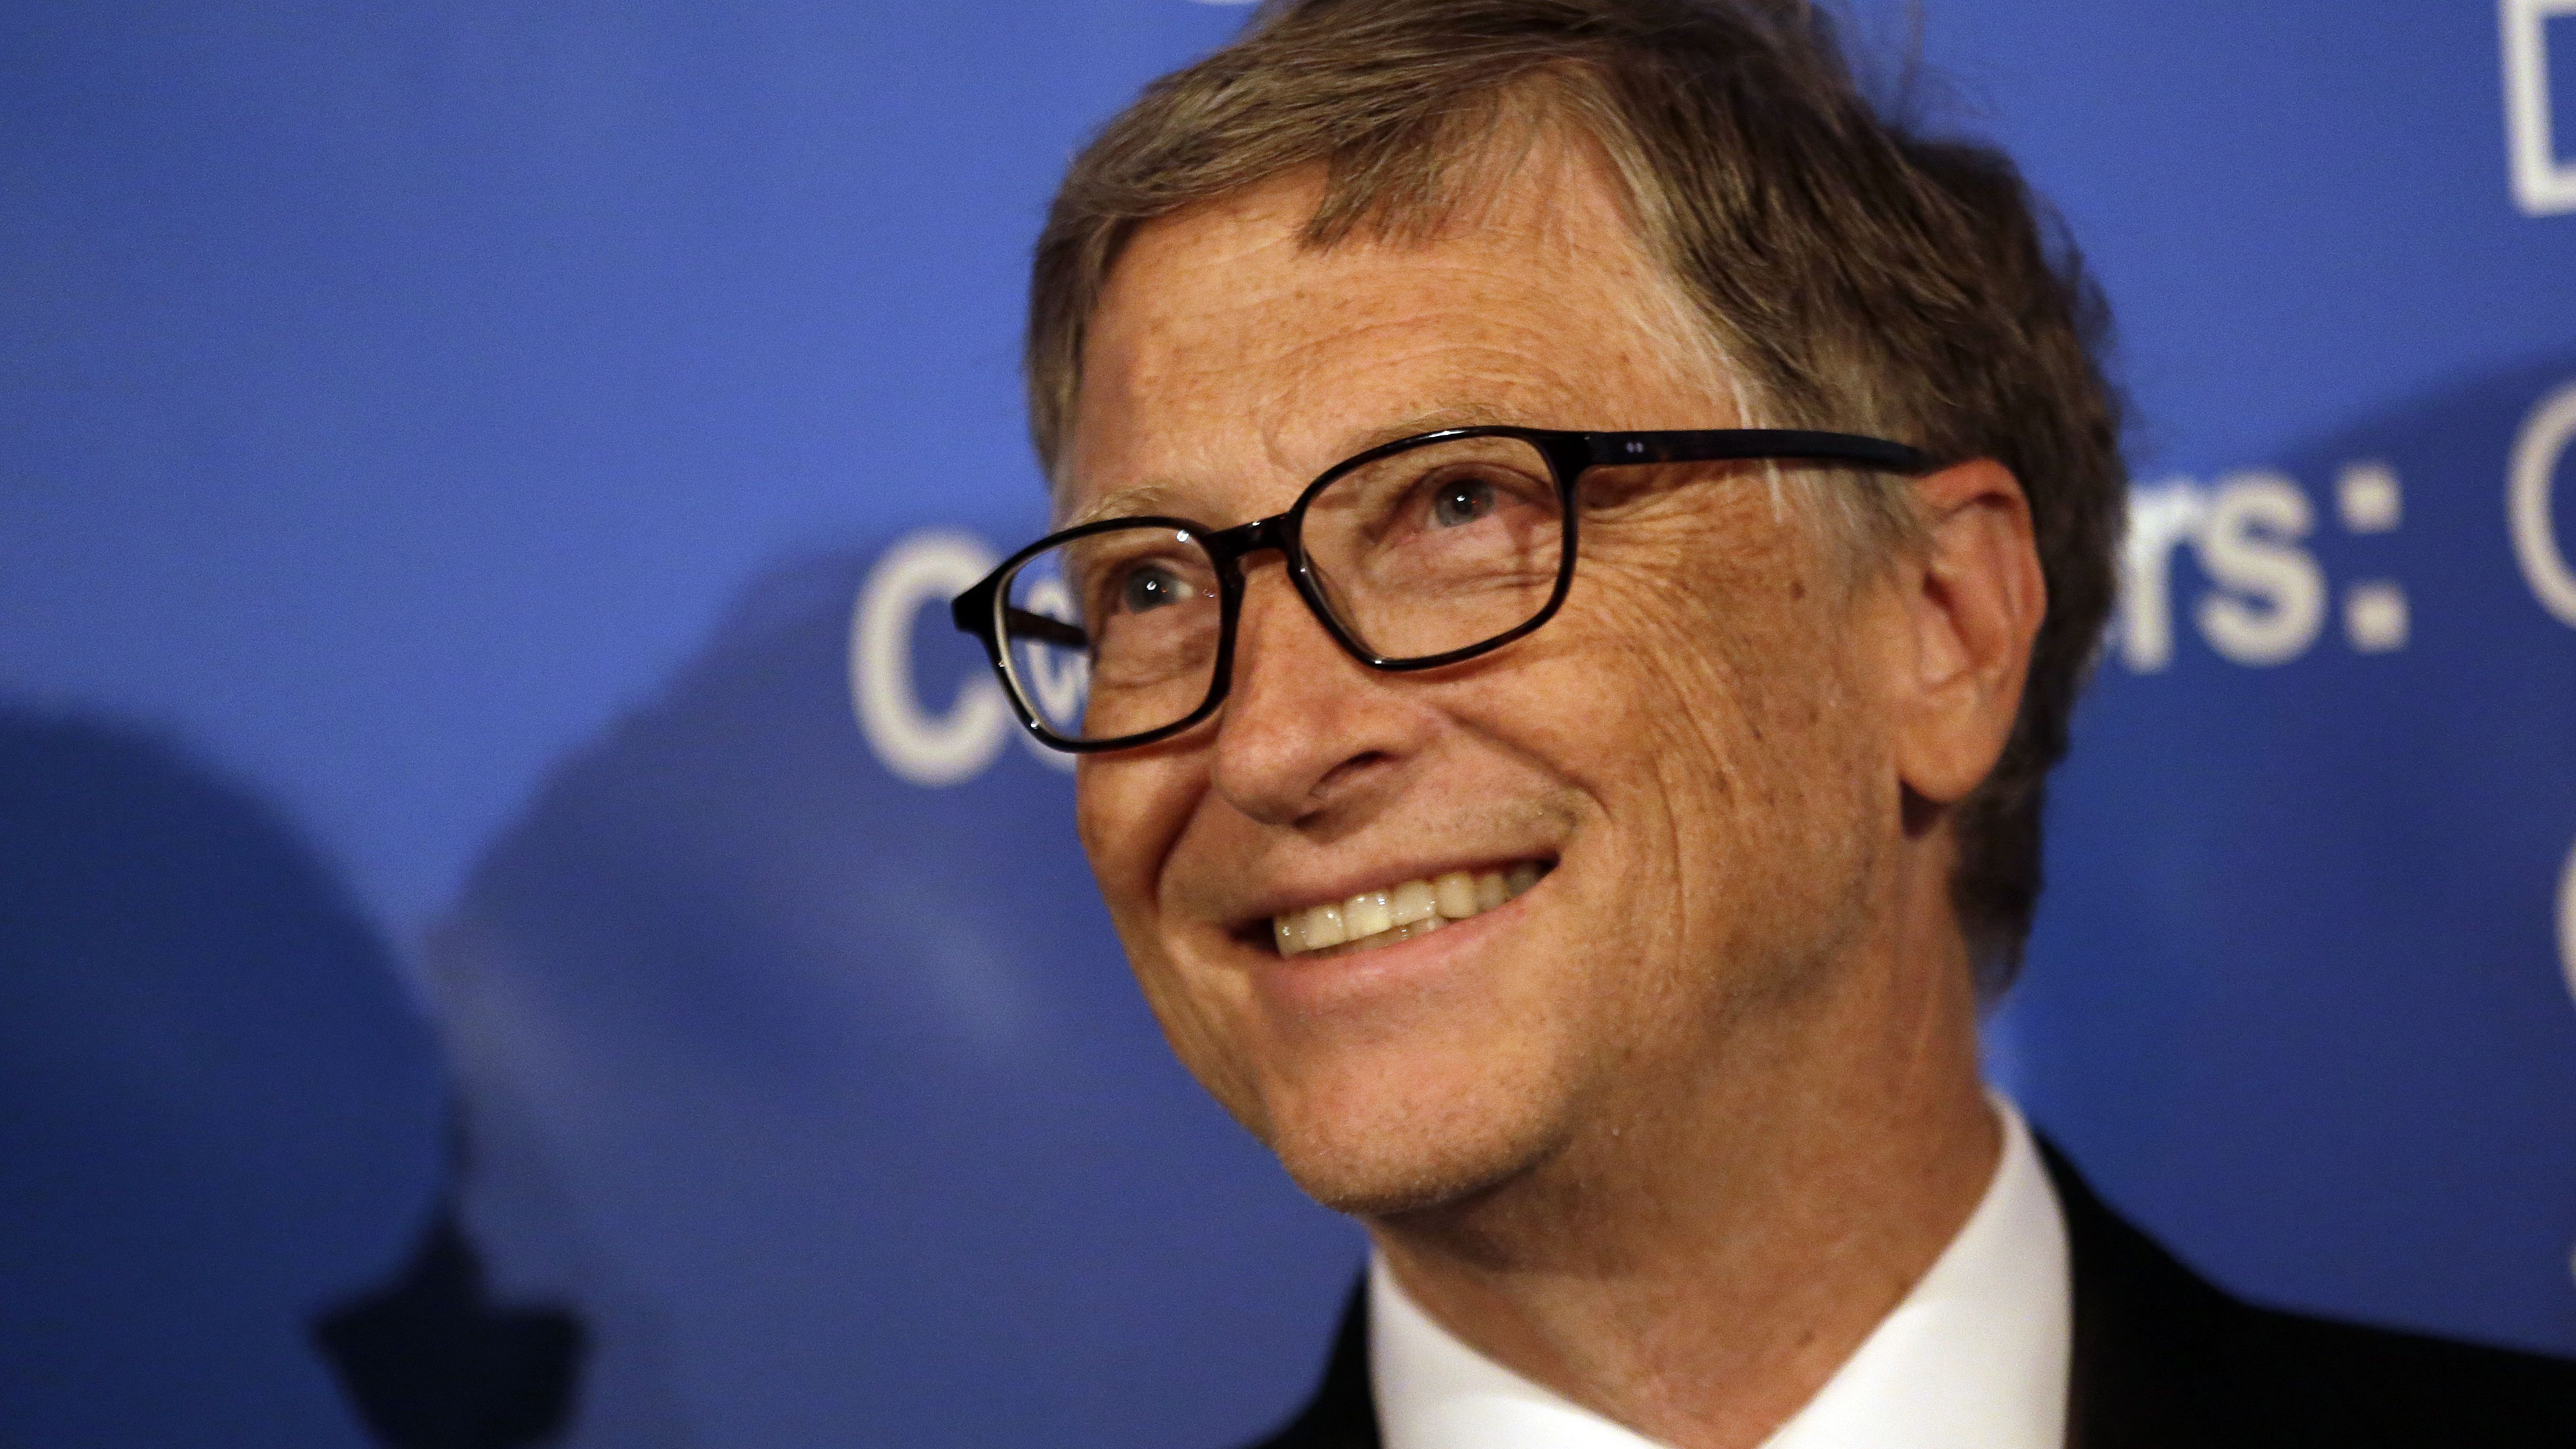 Bill Gates smiles at a U.S. Trade and Investment Cooperation Conference Tuesday, Sept. 22, 2015, in Seattle. The Ministry of Commerce of China (MOFCOM), the State of Washington and partners hosted the conference to explore cooperation between Chinese provinces and U.S. businesses. (AP Photo/Elaine Thompson)